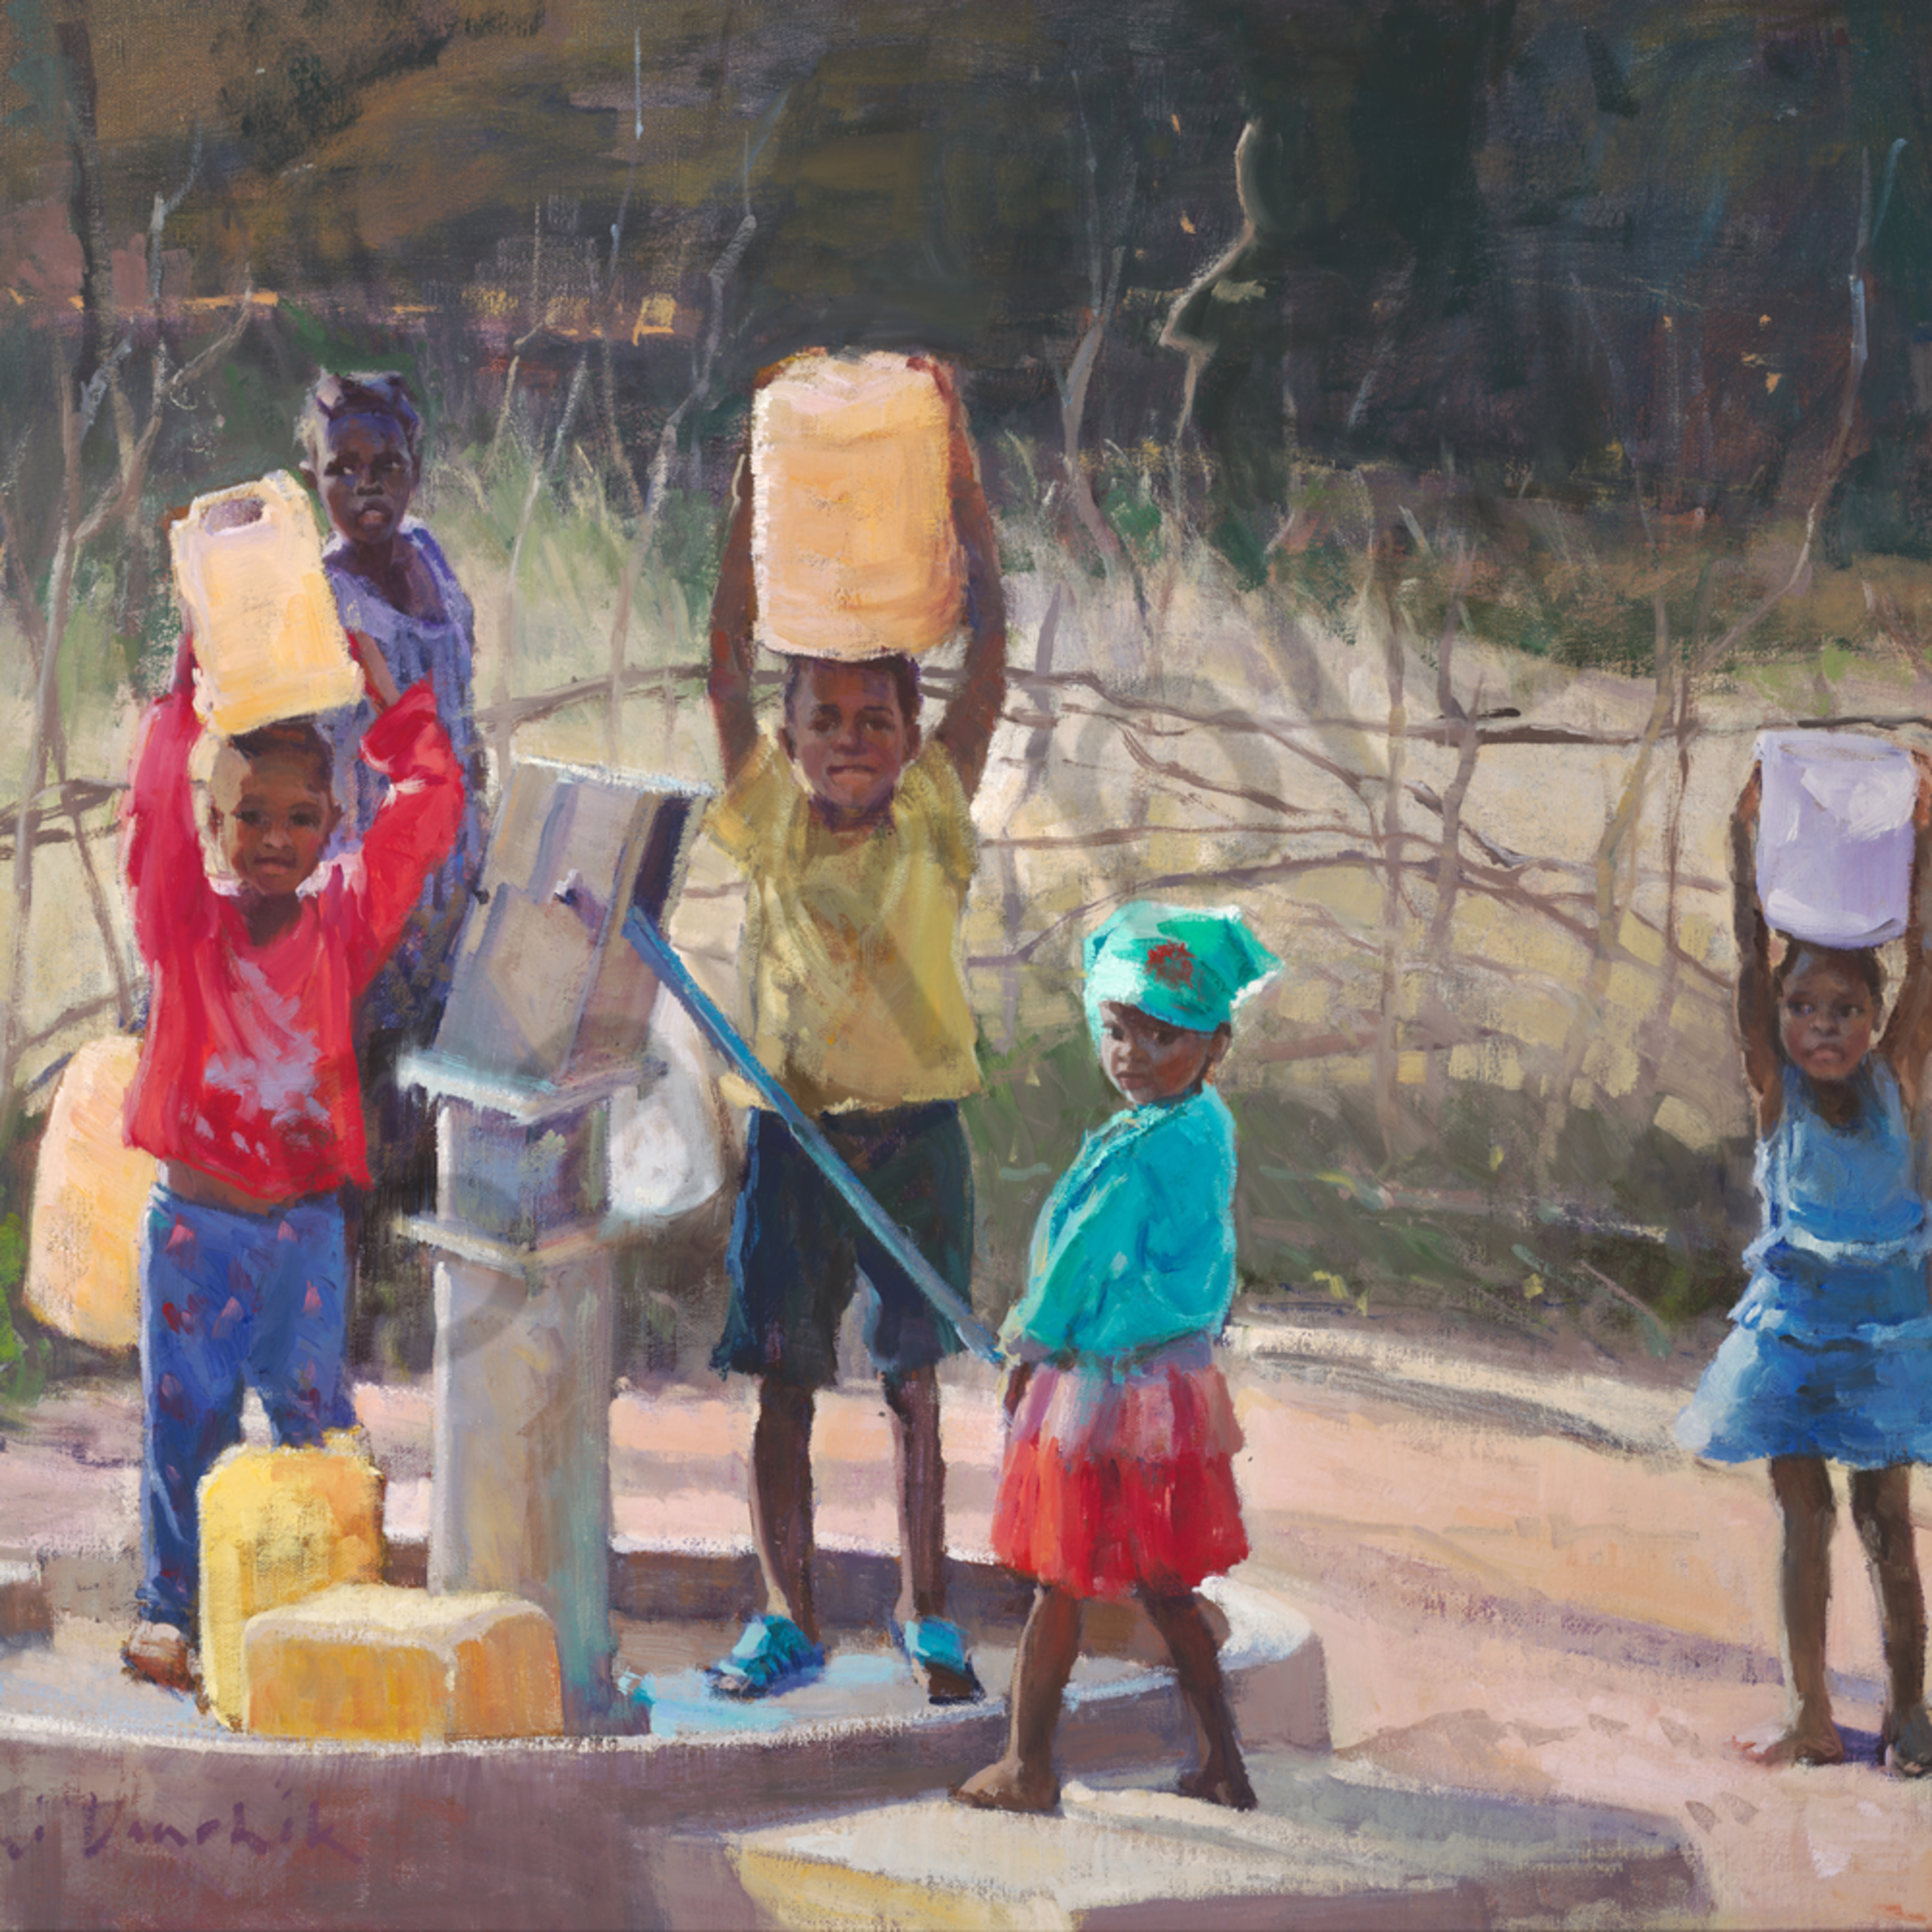 Give the children water 24 x 30 withadjustments khhu8c